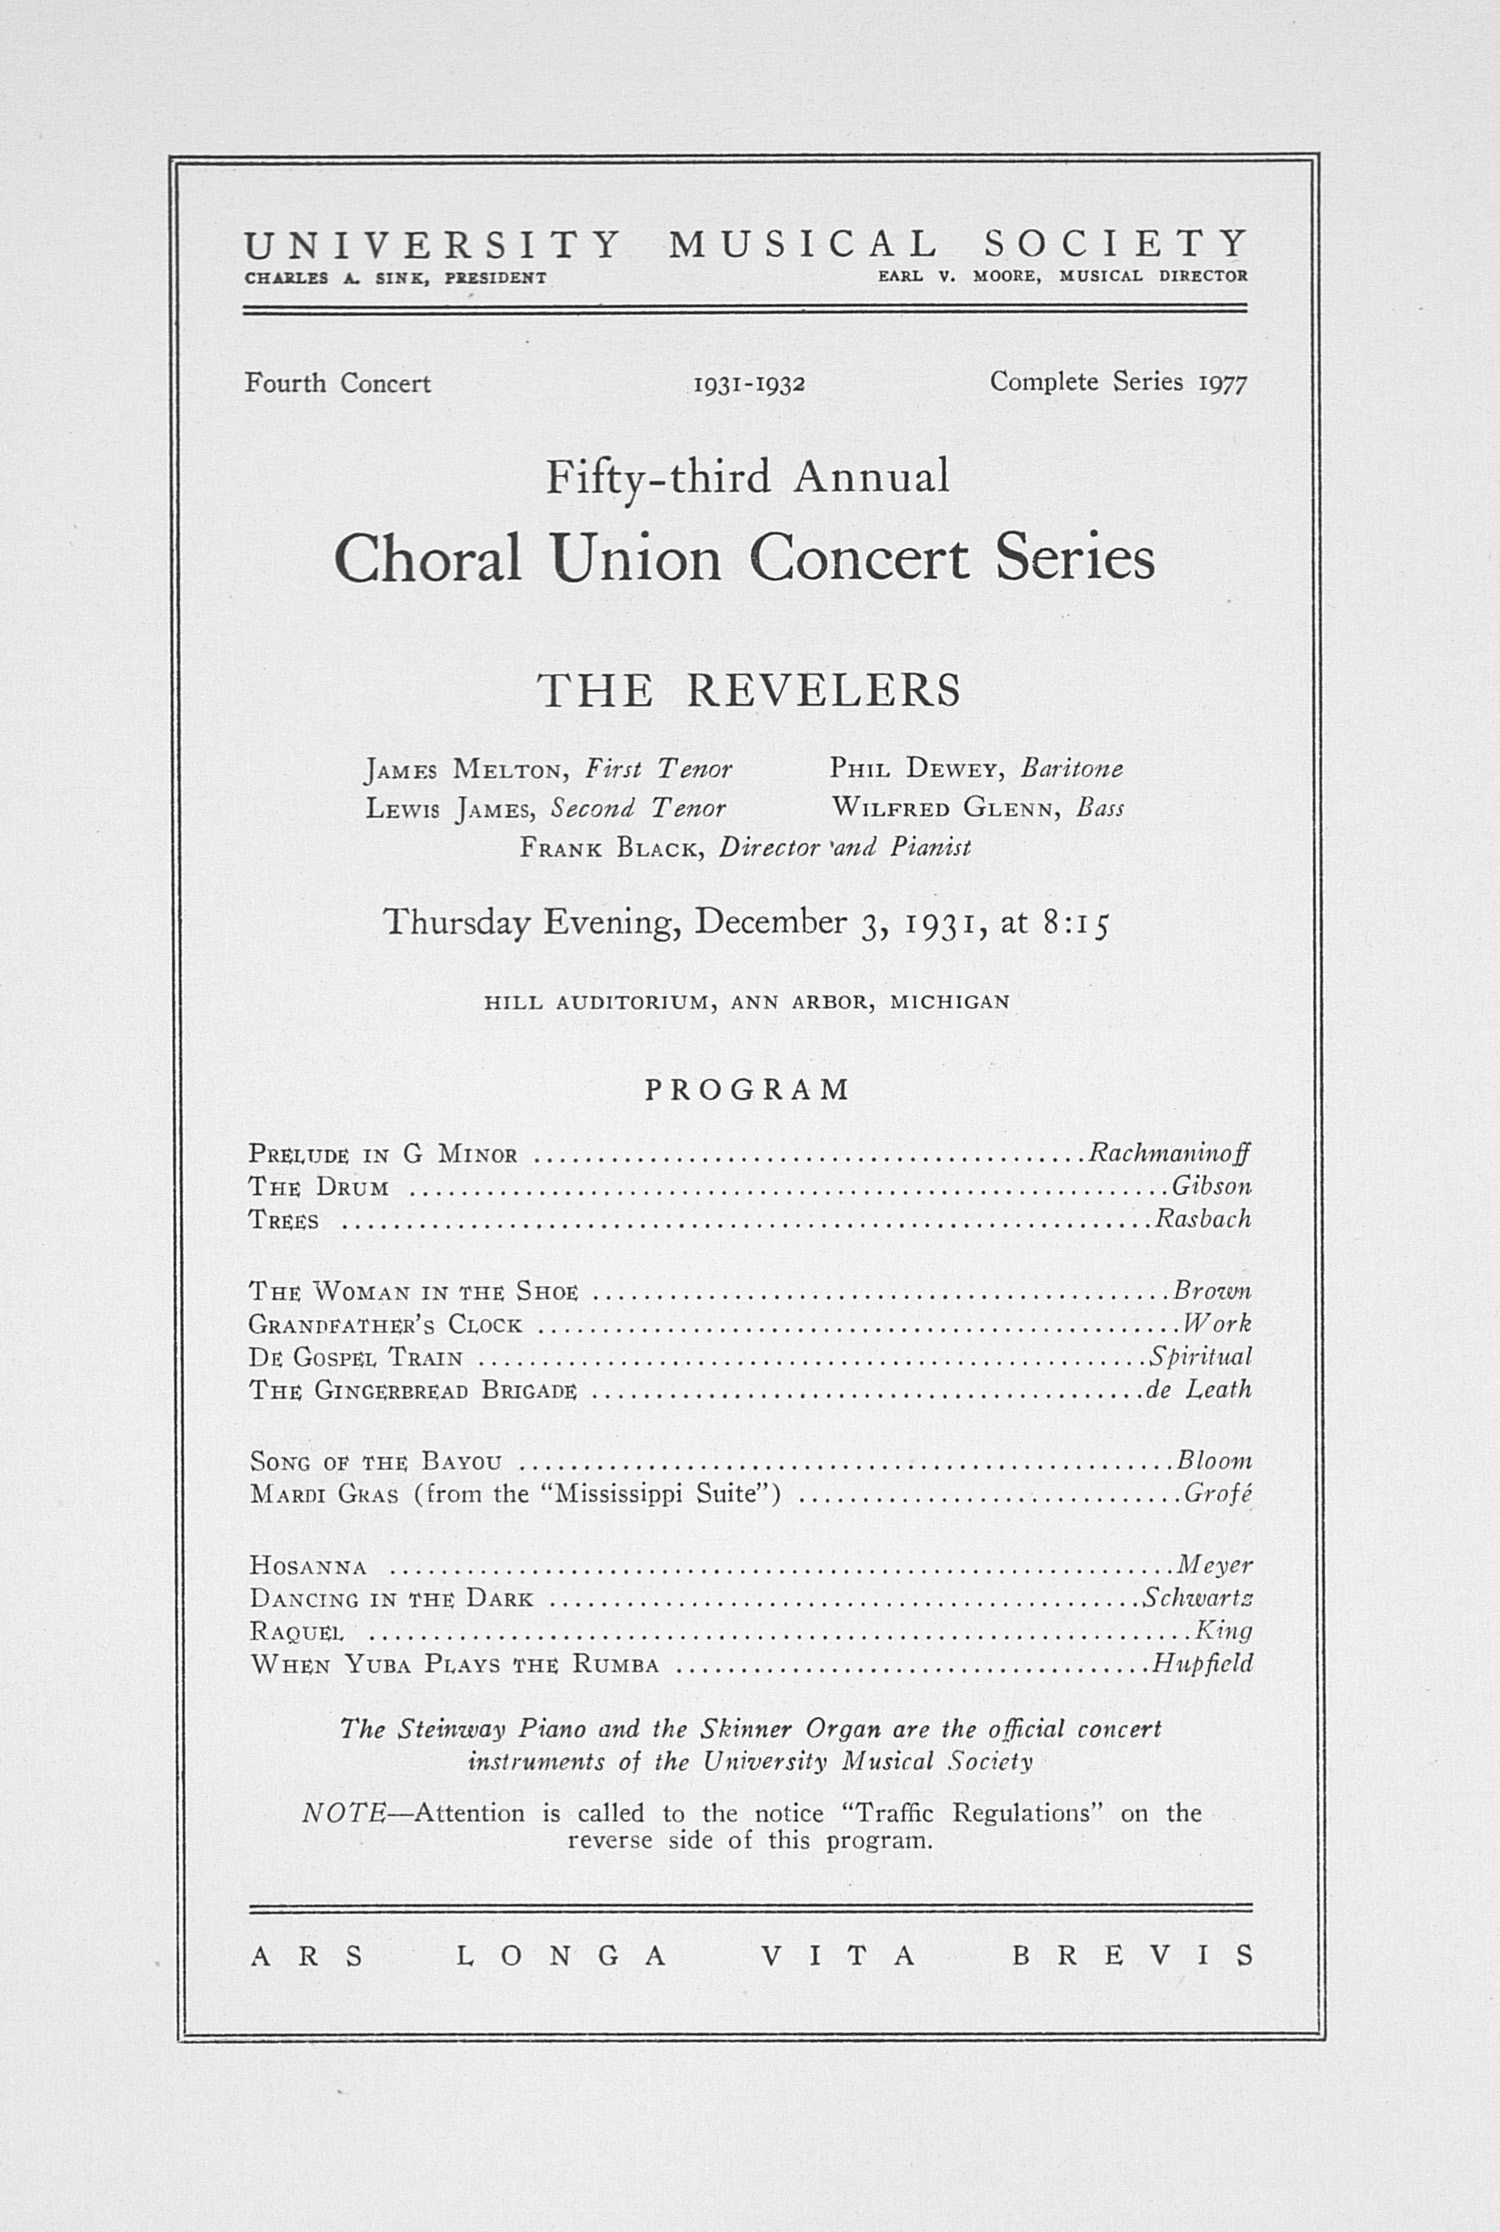 UMS Concert Program, December 3, 1931: Fifty-third Annual Choral Union Concert Series -- The Revelers image